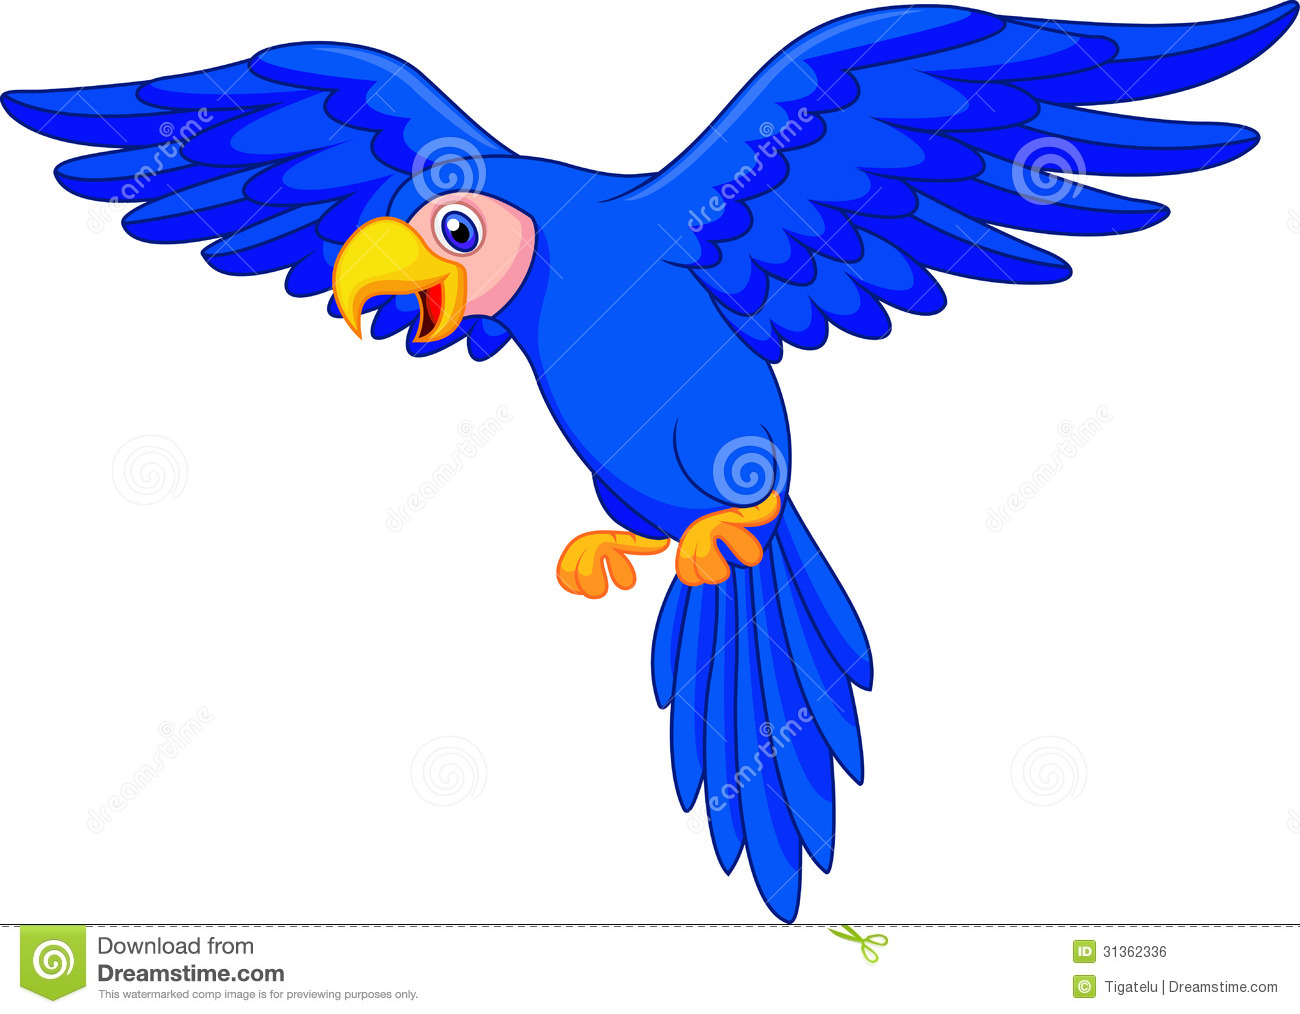 Cartoon parrot flying - photo#3